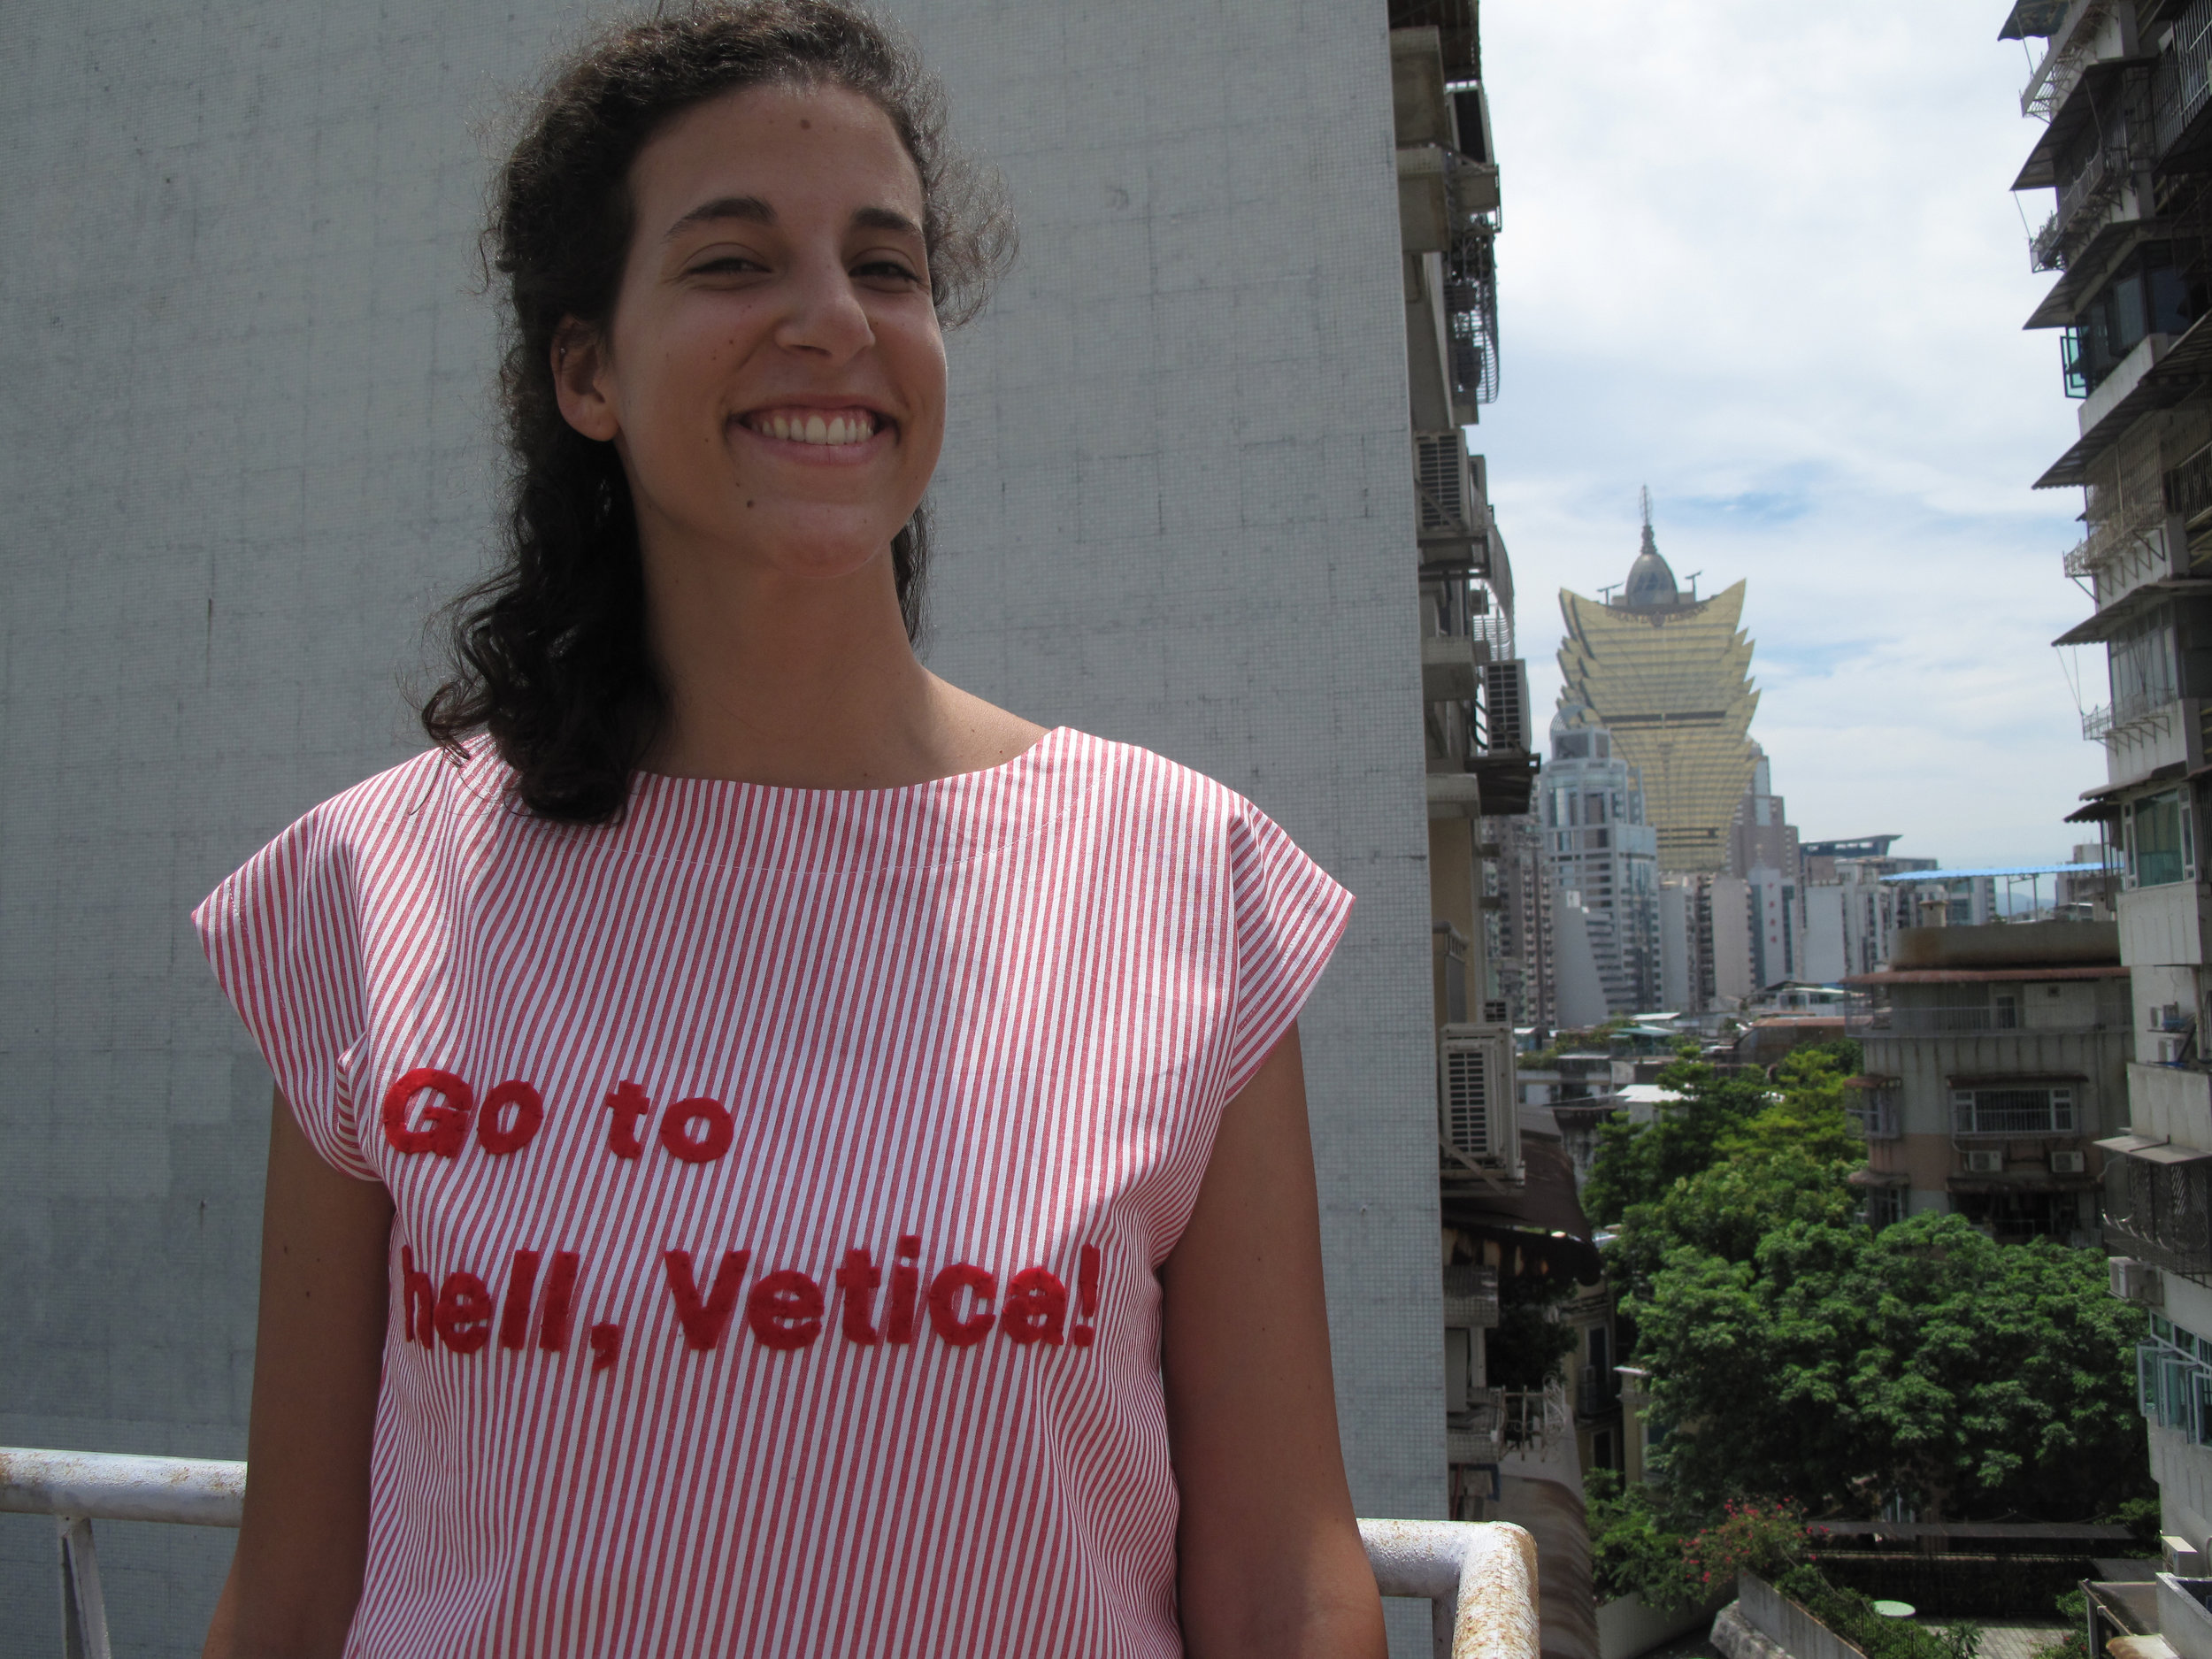 ...I participated in a group exhibition with handmade t-shirts - Macau (China), August 2011